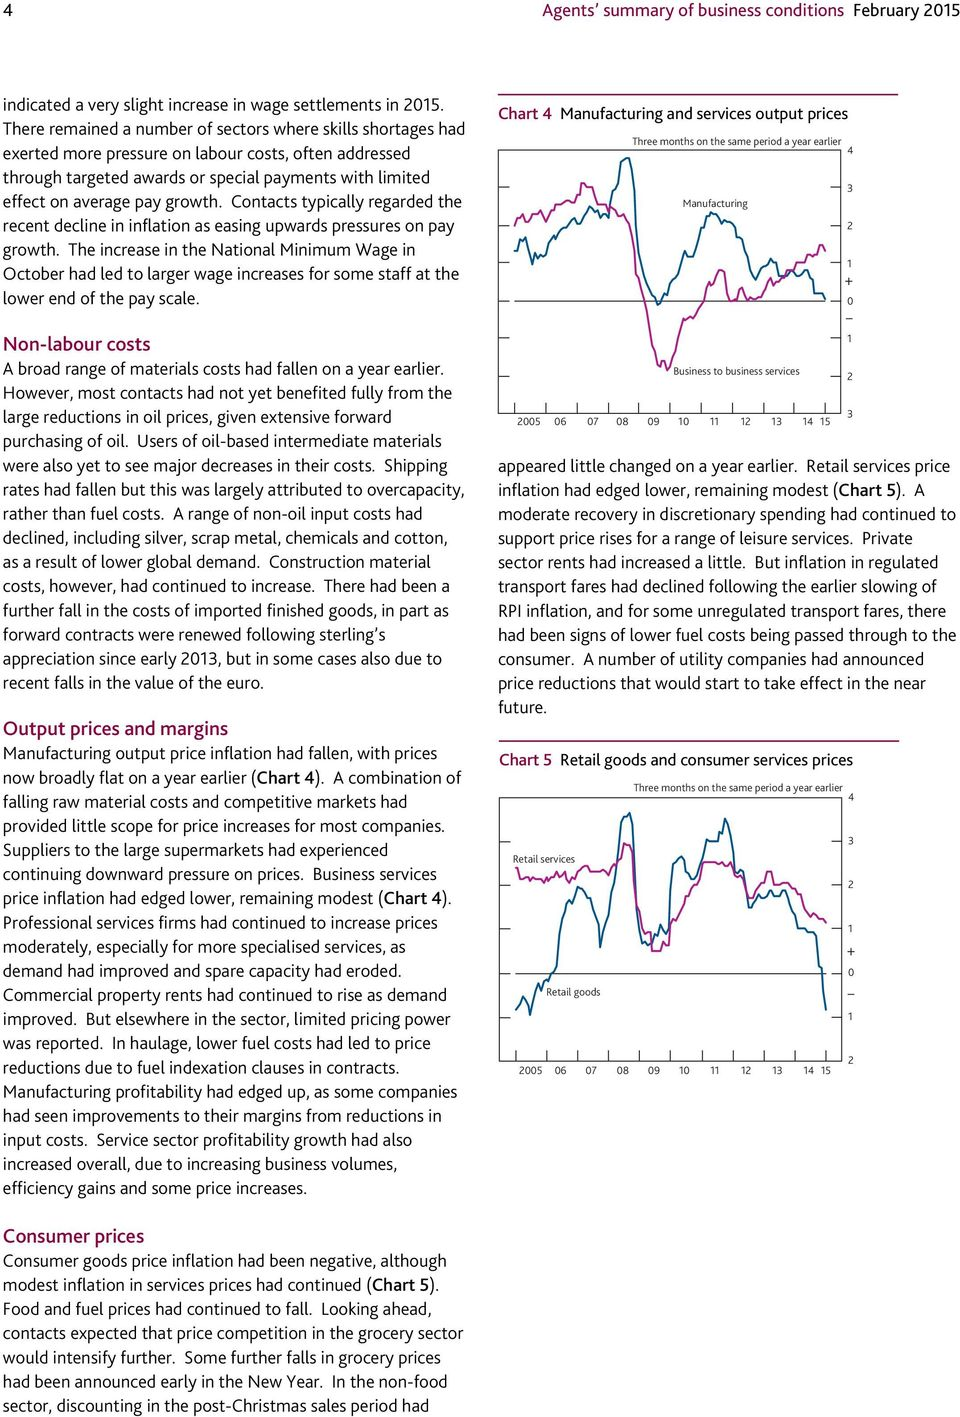 growth. Contacts typically regarded the recent decline in inflation as easing upwards pressures on pay growth.